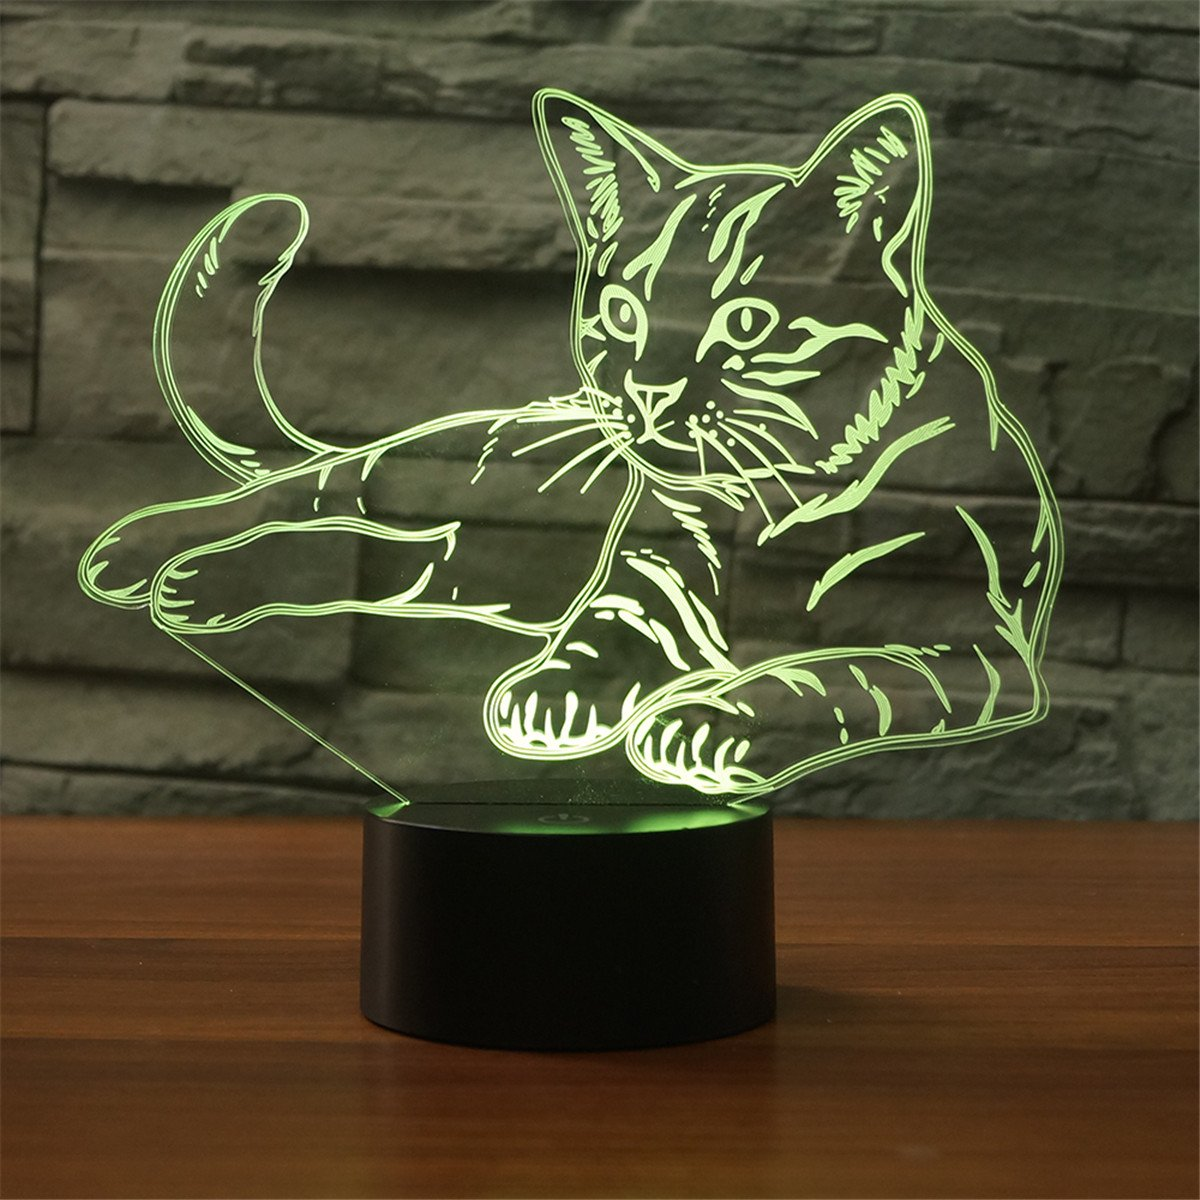 Cat 3D Illusion Lamp YKL WORLD Led Night Light Touch 7 Changing Color Toys Bed Room Decor Lighting Christmas Birthdays Gifts for Boys Girls